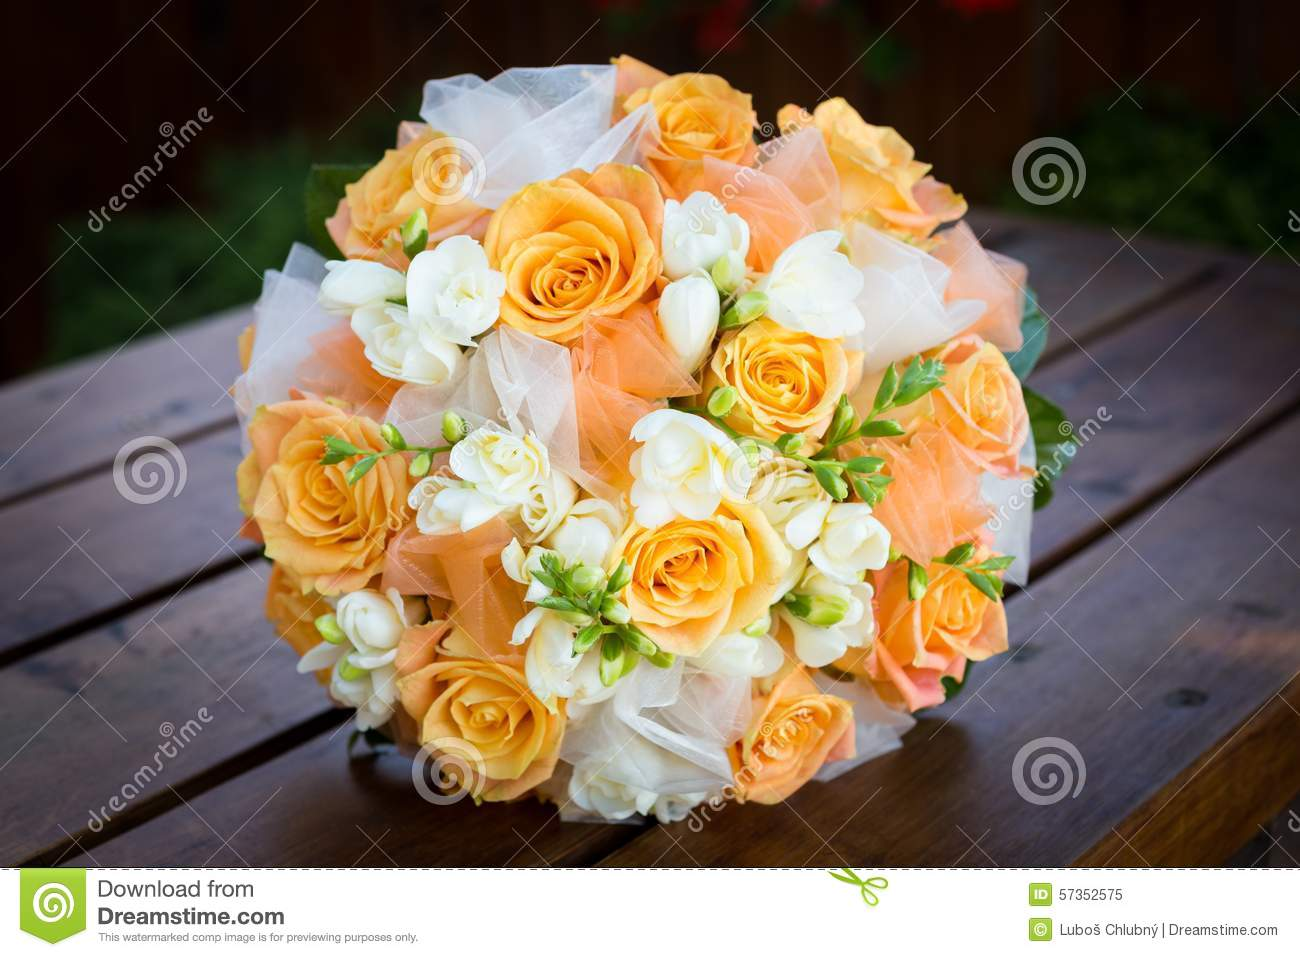 Bridal Bouquet With Orange And White Flowers Stock Image - Image of ...